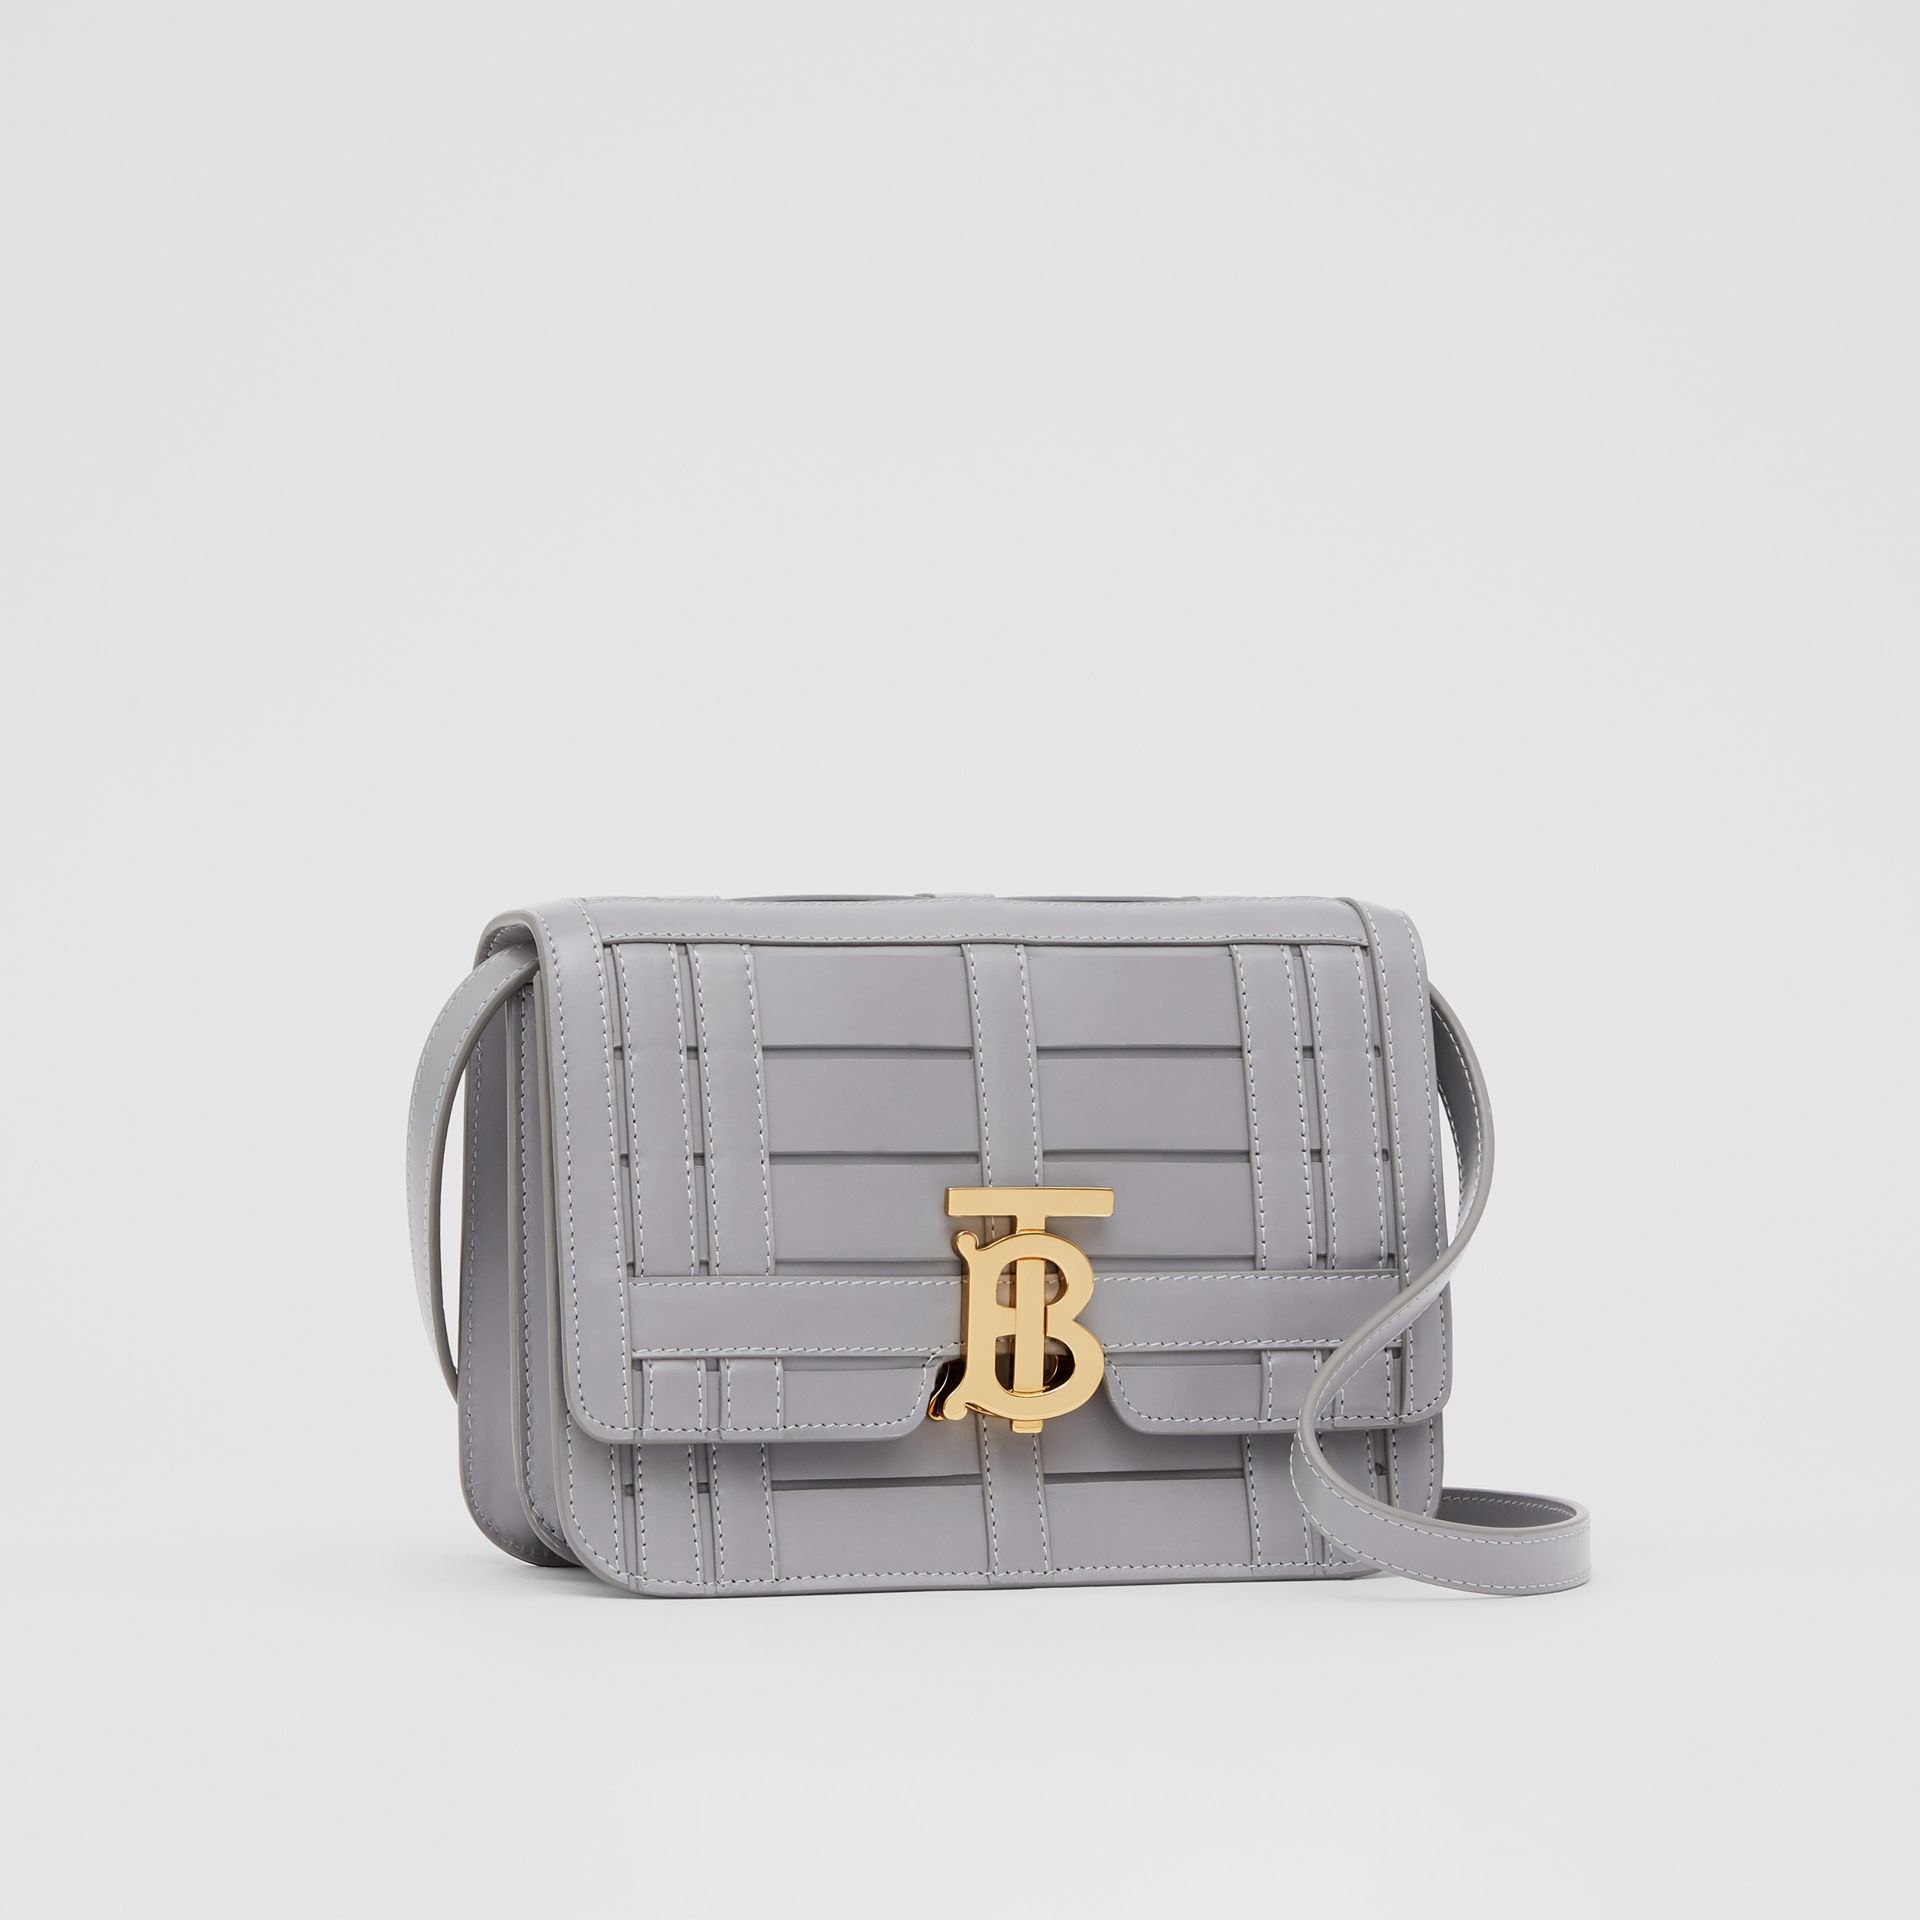 Small Woven Leather TB Bag in Cloud Grey - Women | Burberry - gallery image 6